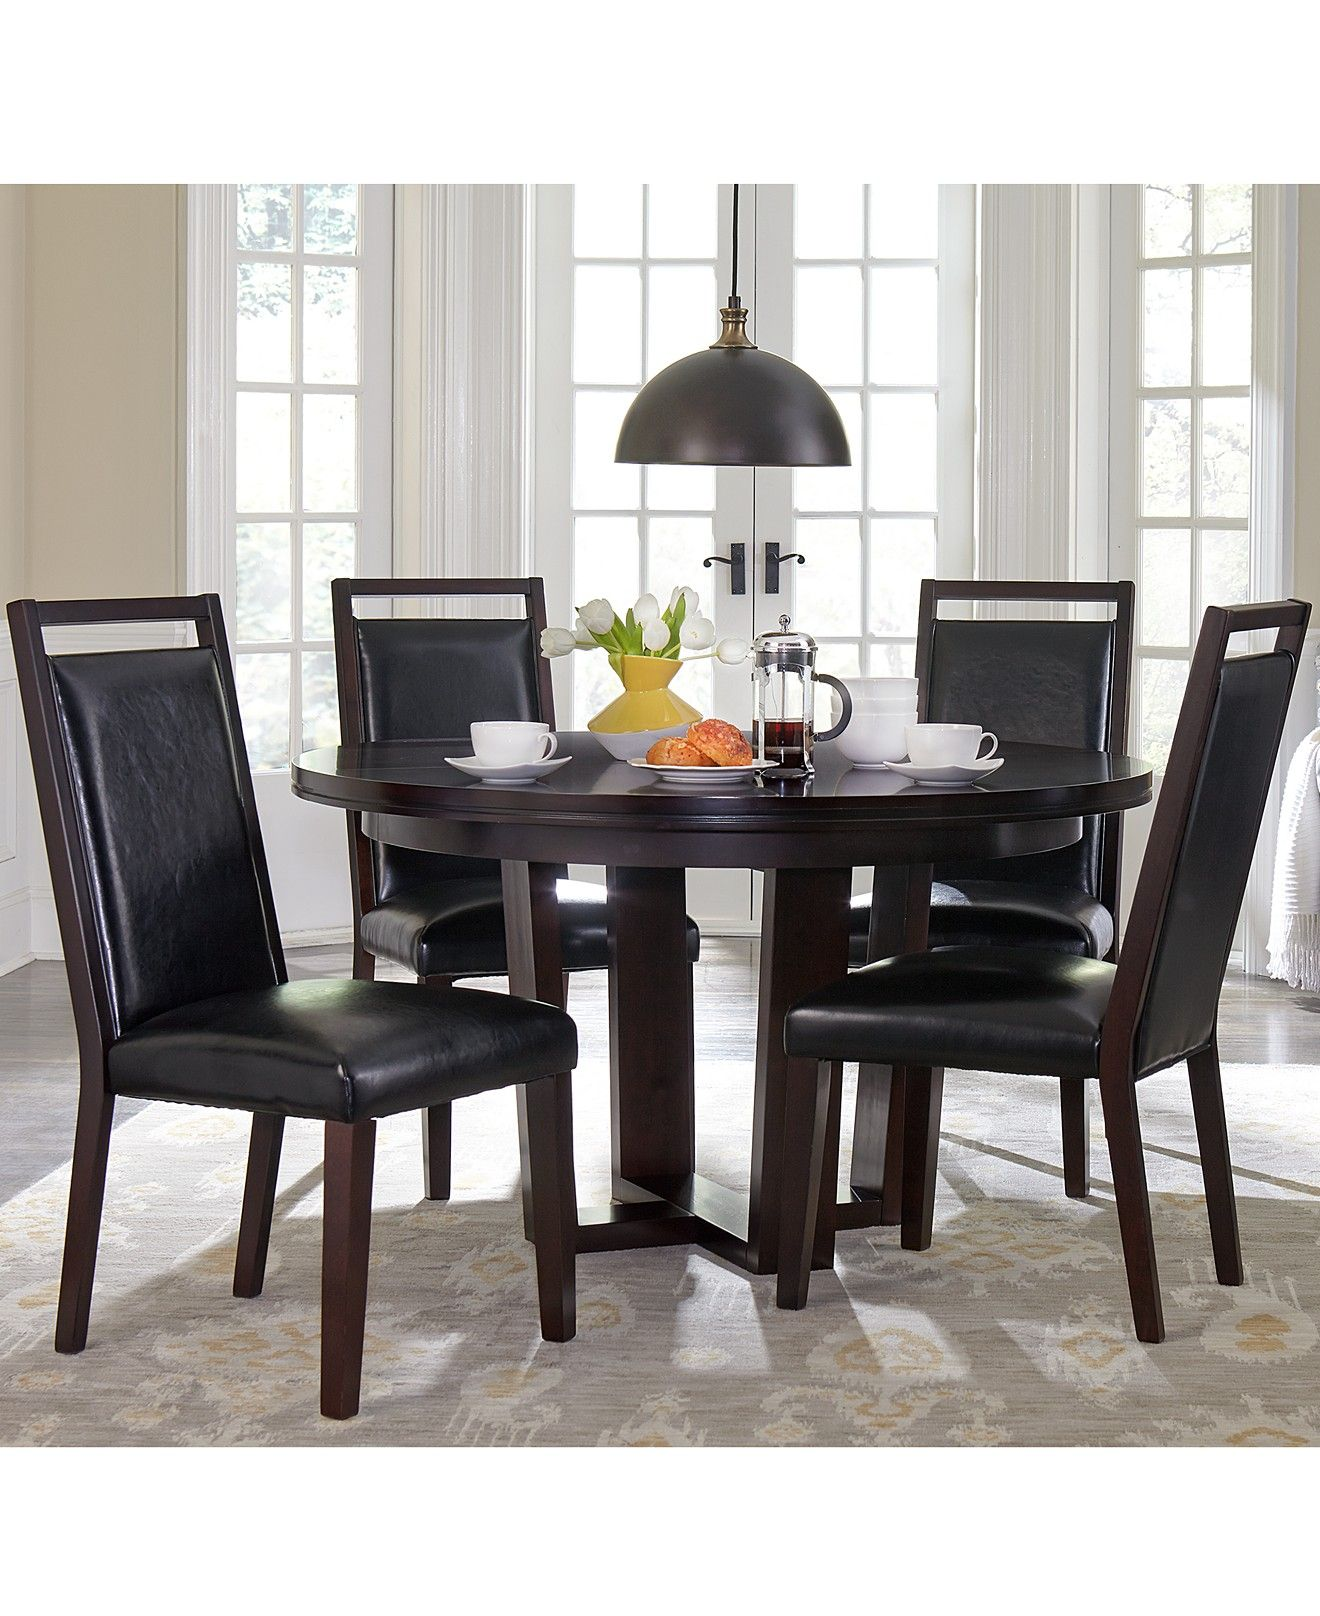 Belaire Round Dining Black Furniture Collection Dining Room